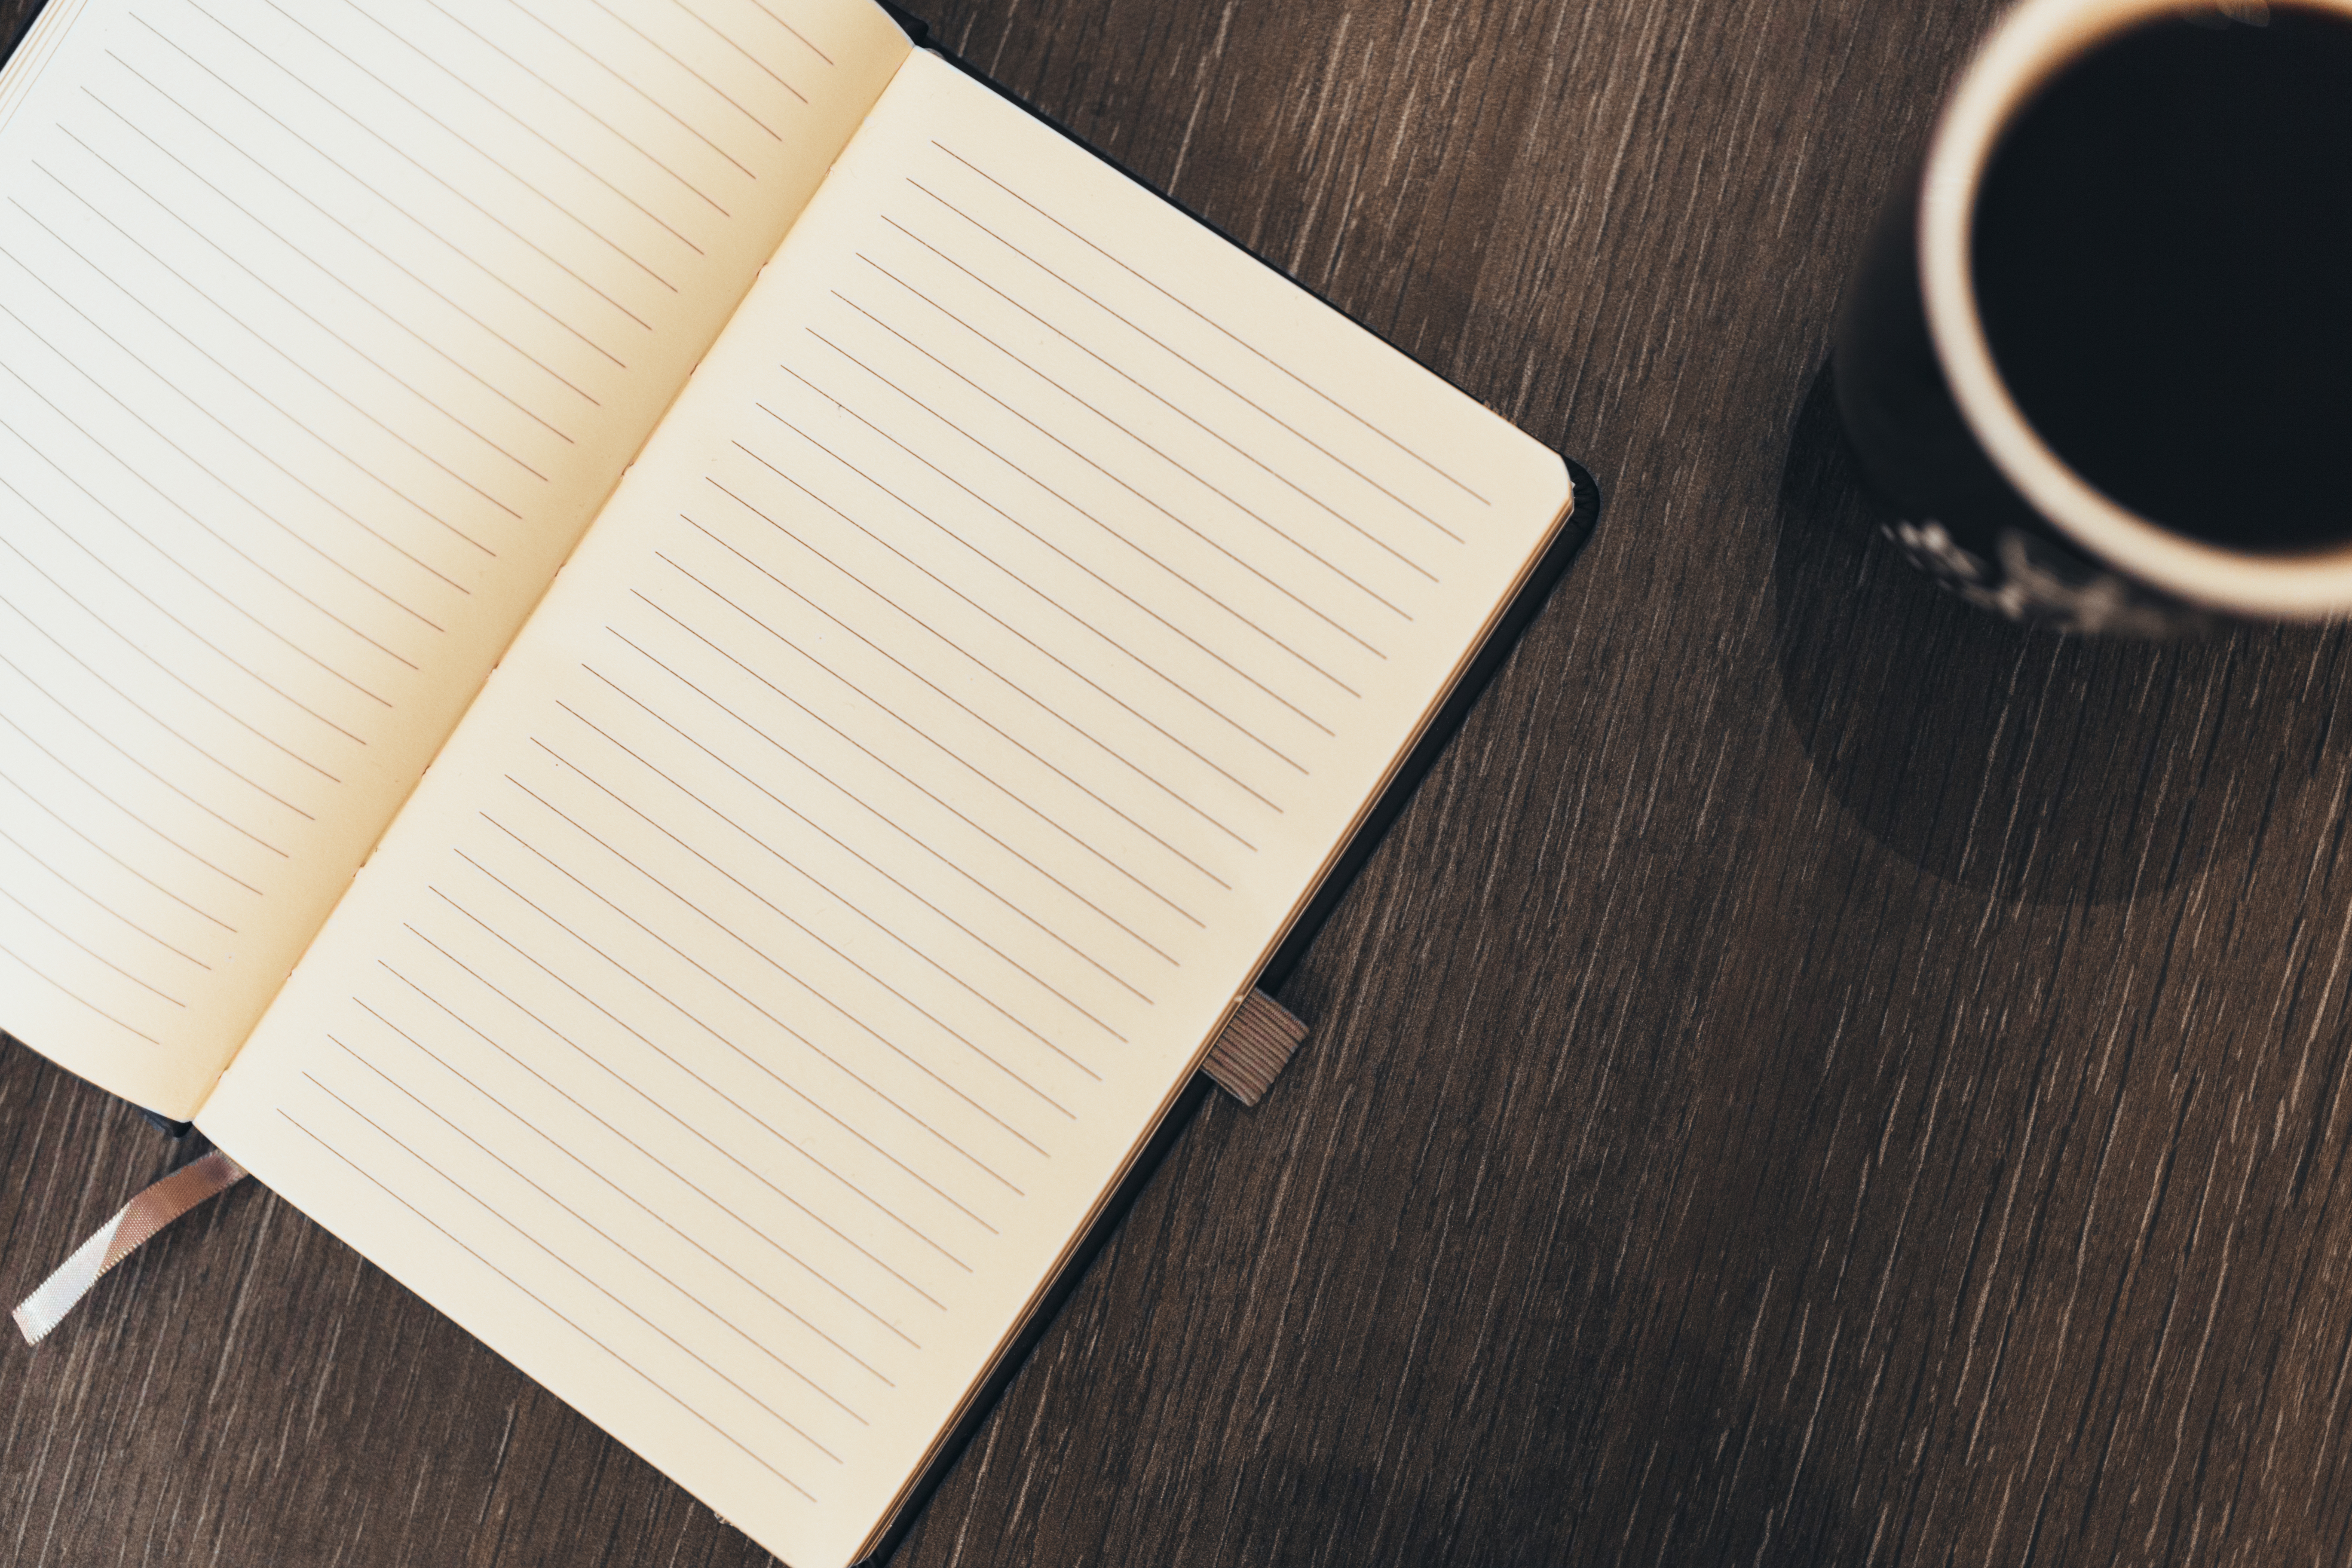 4 Mistakes That Make Your To-Do List Problematic